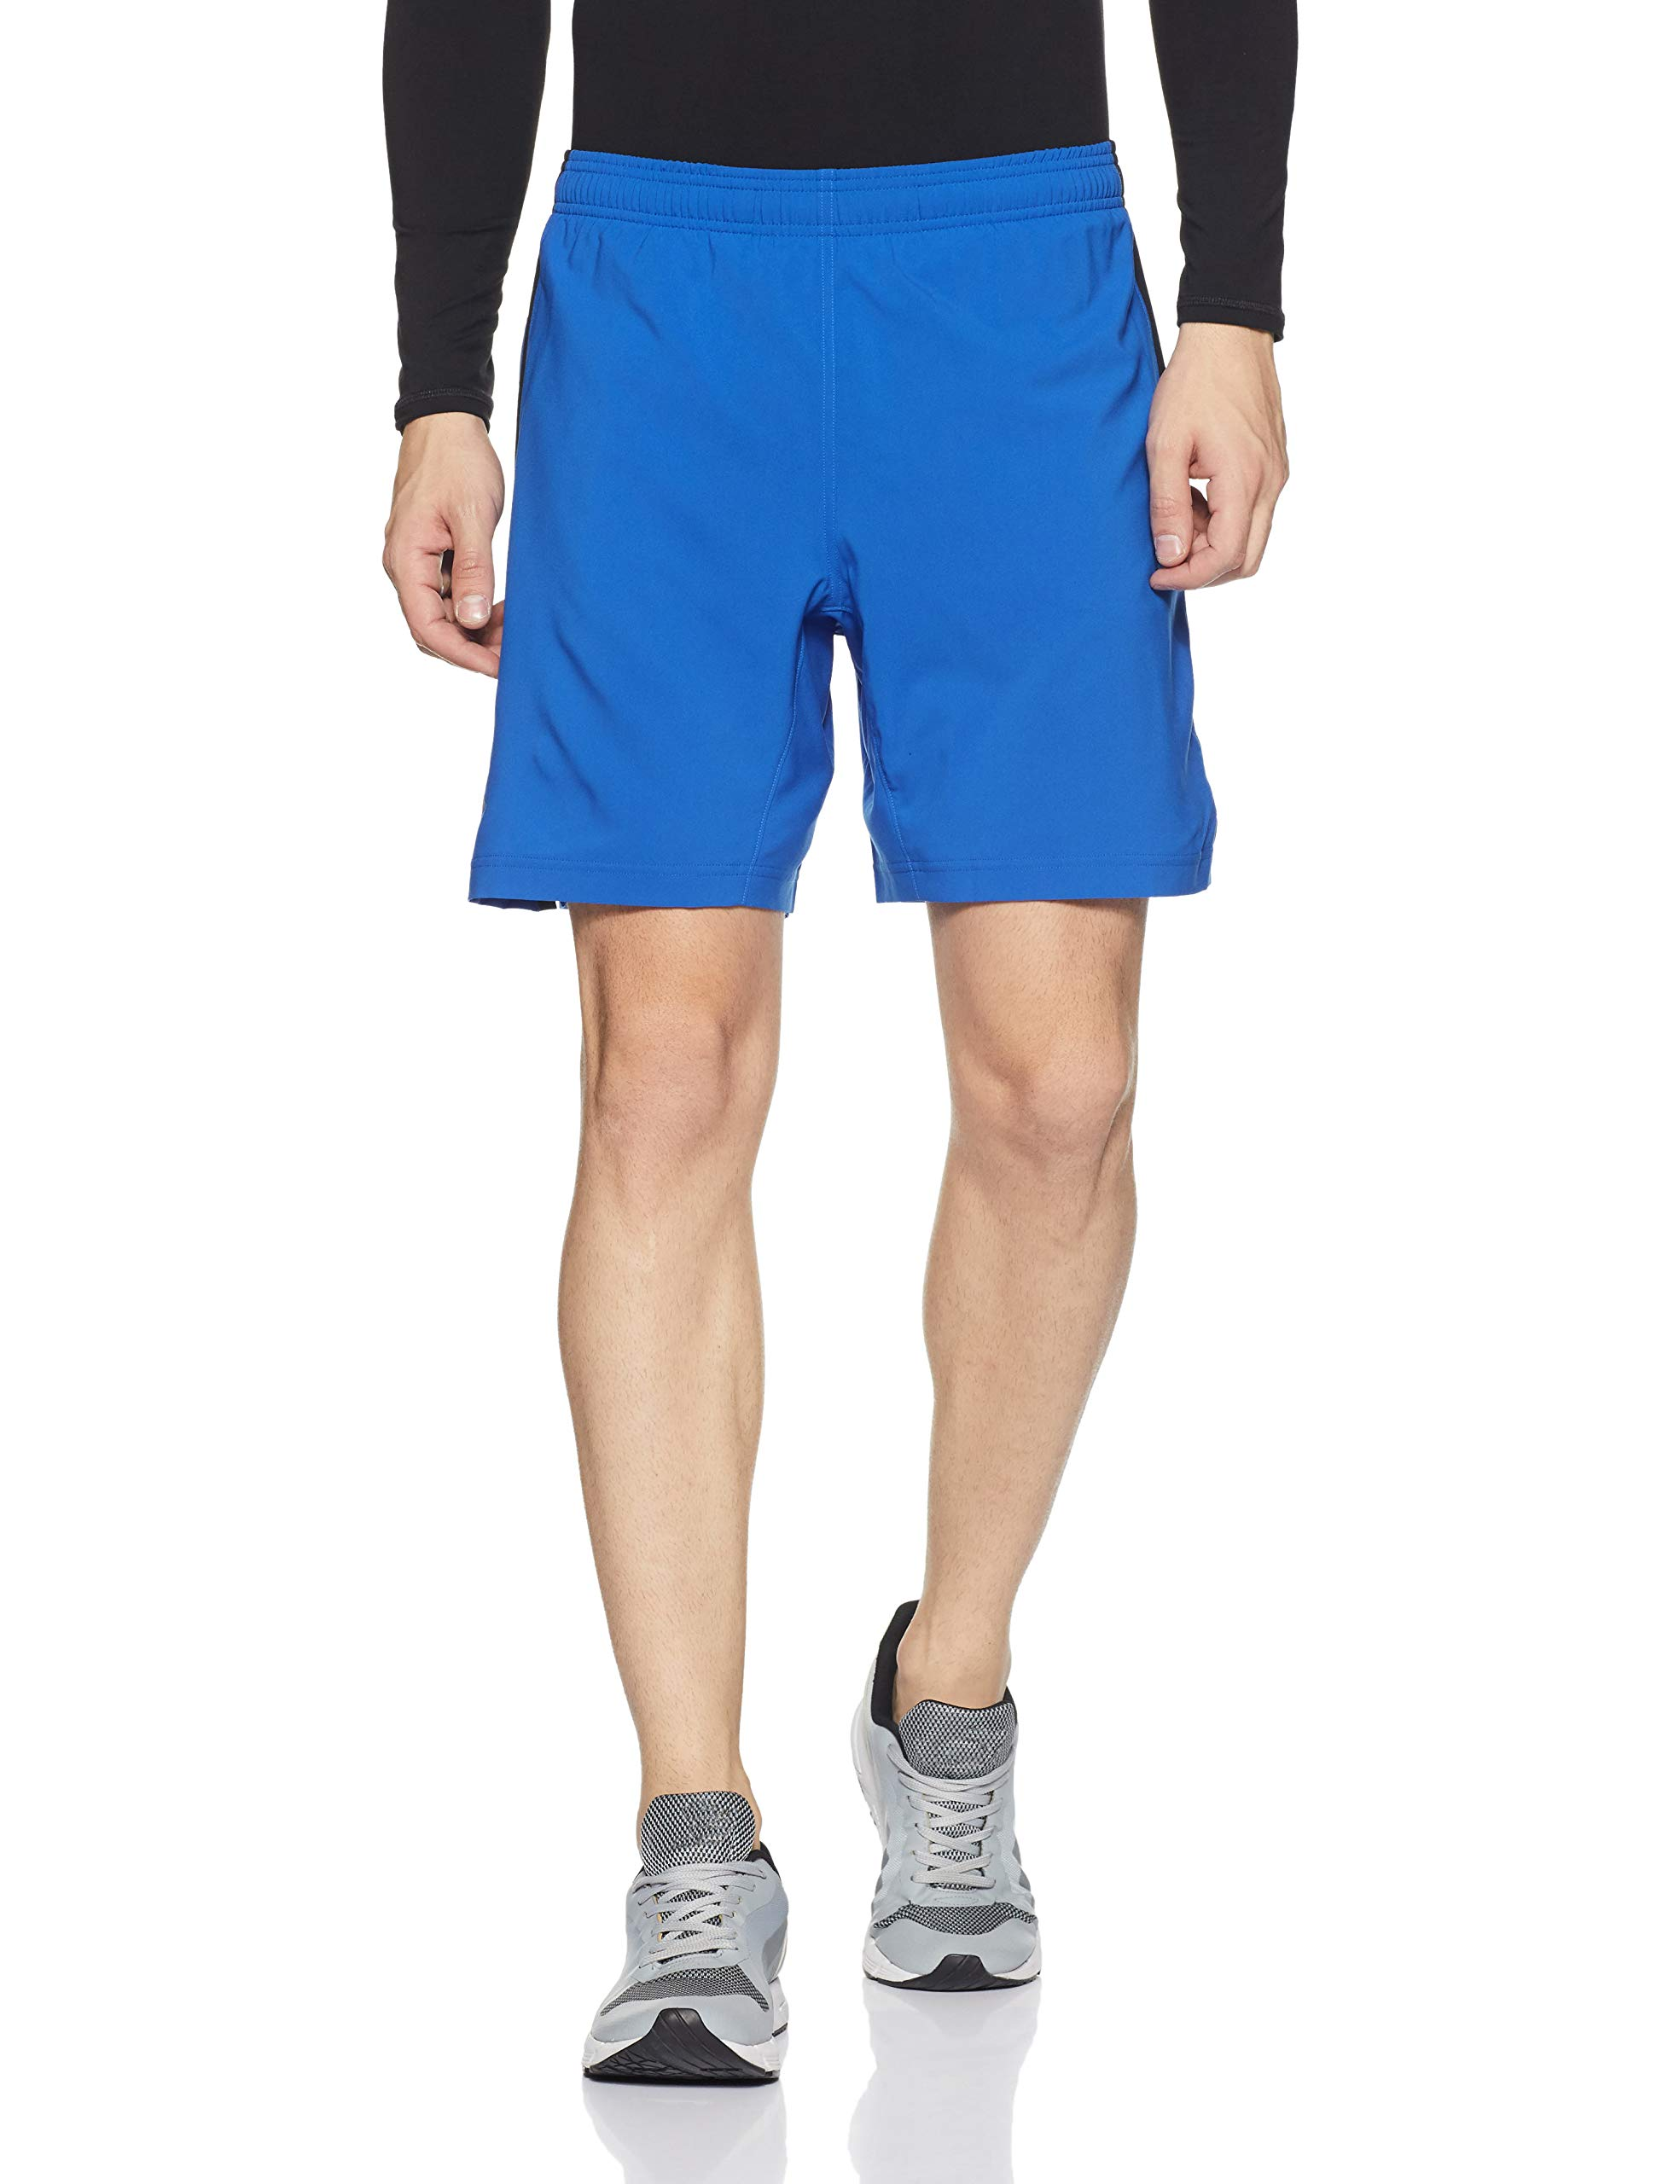 Under Armour Men's Launch 2-in-1 Shorts,Lapis Blue (984)/Reflective, Large